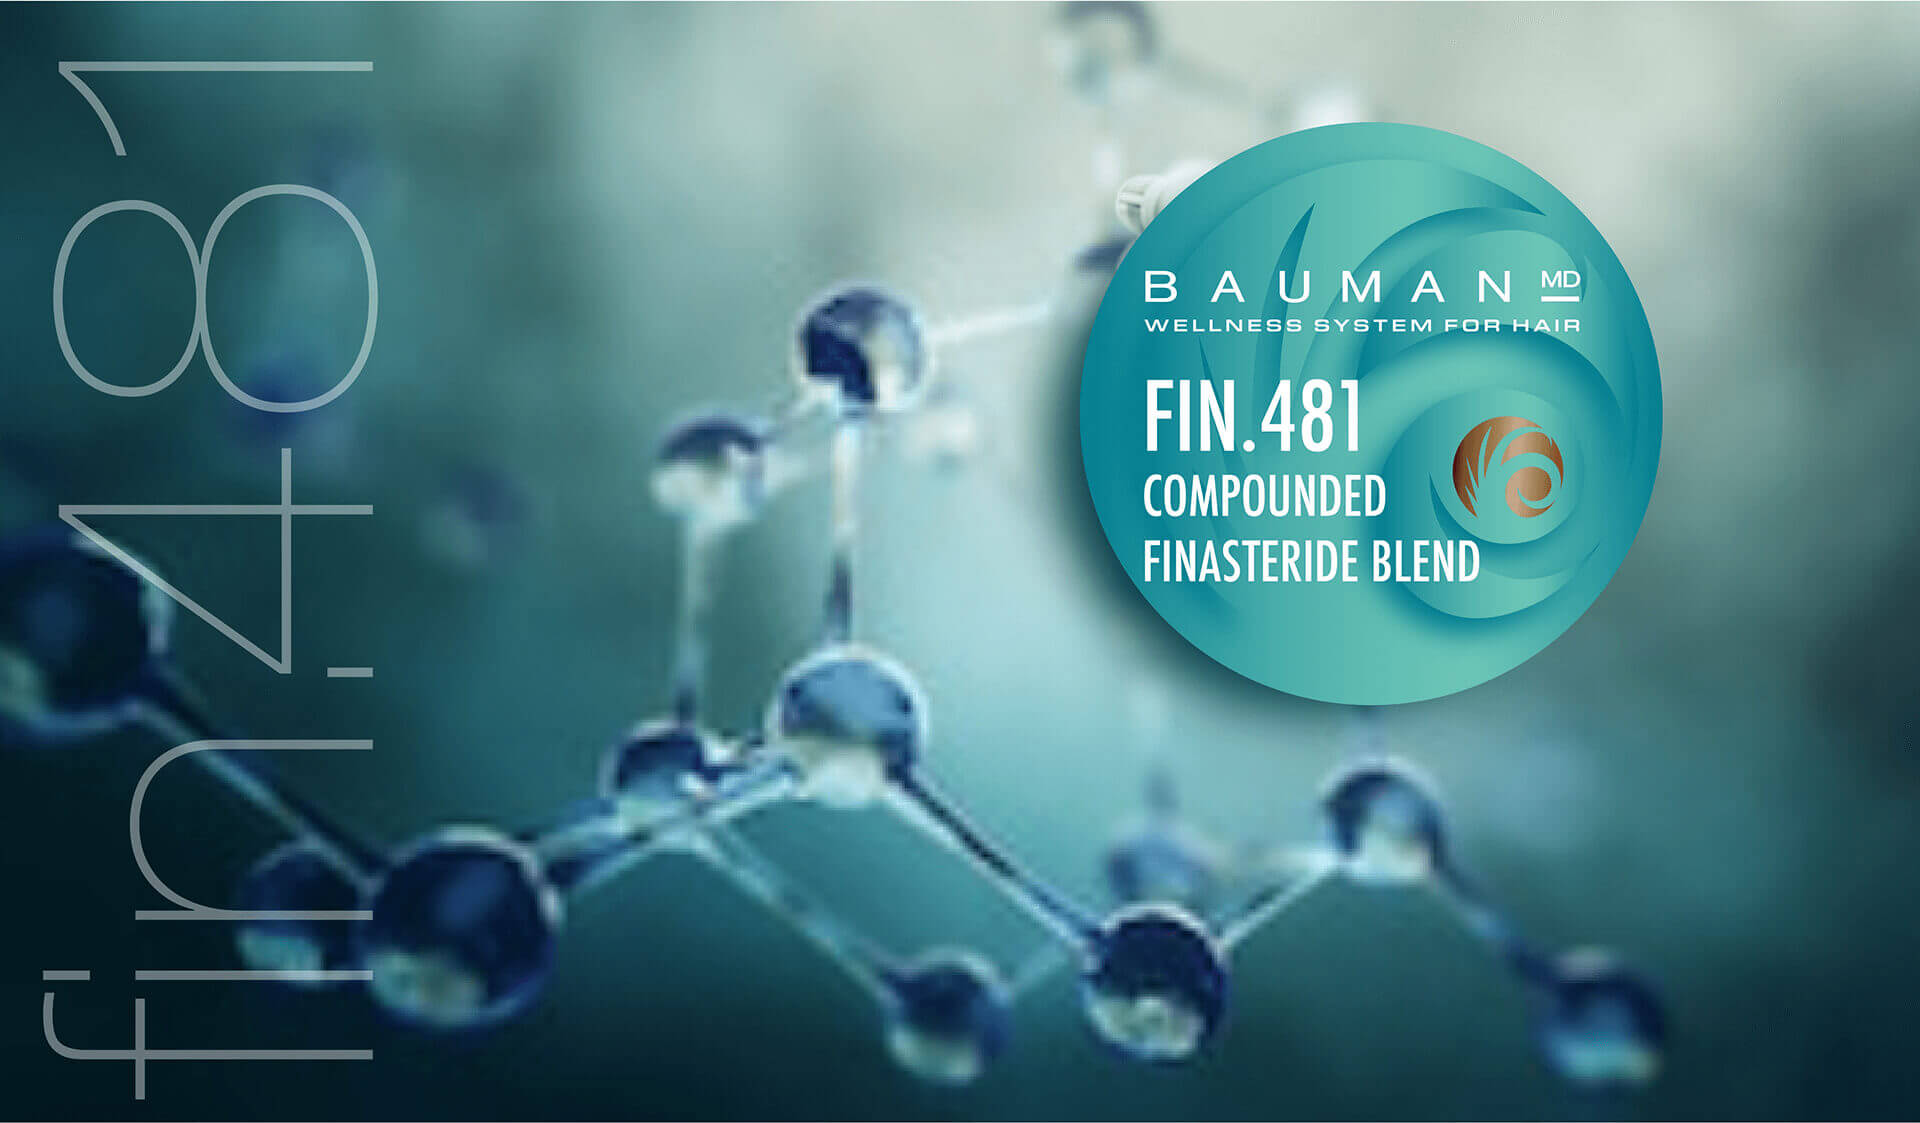 compound finasteroid blend Compounded Finasteride: Fin.481